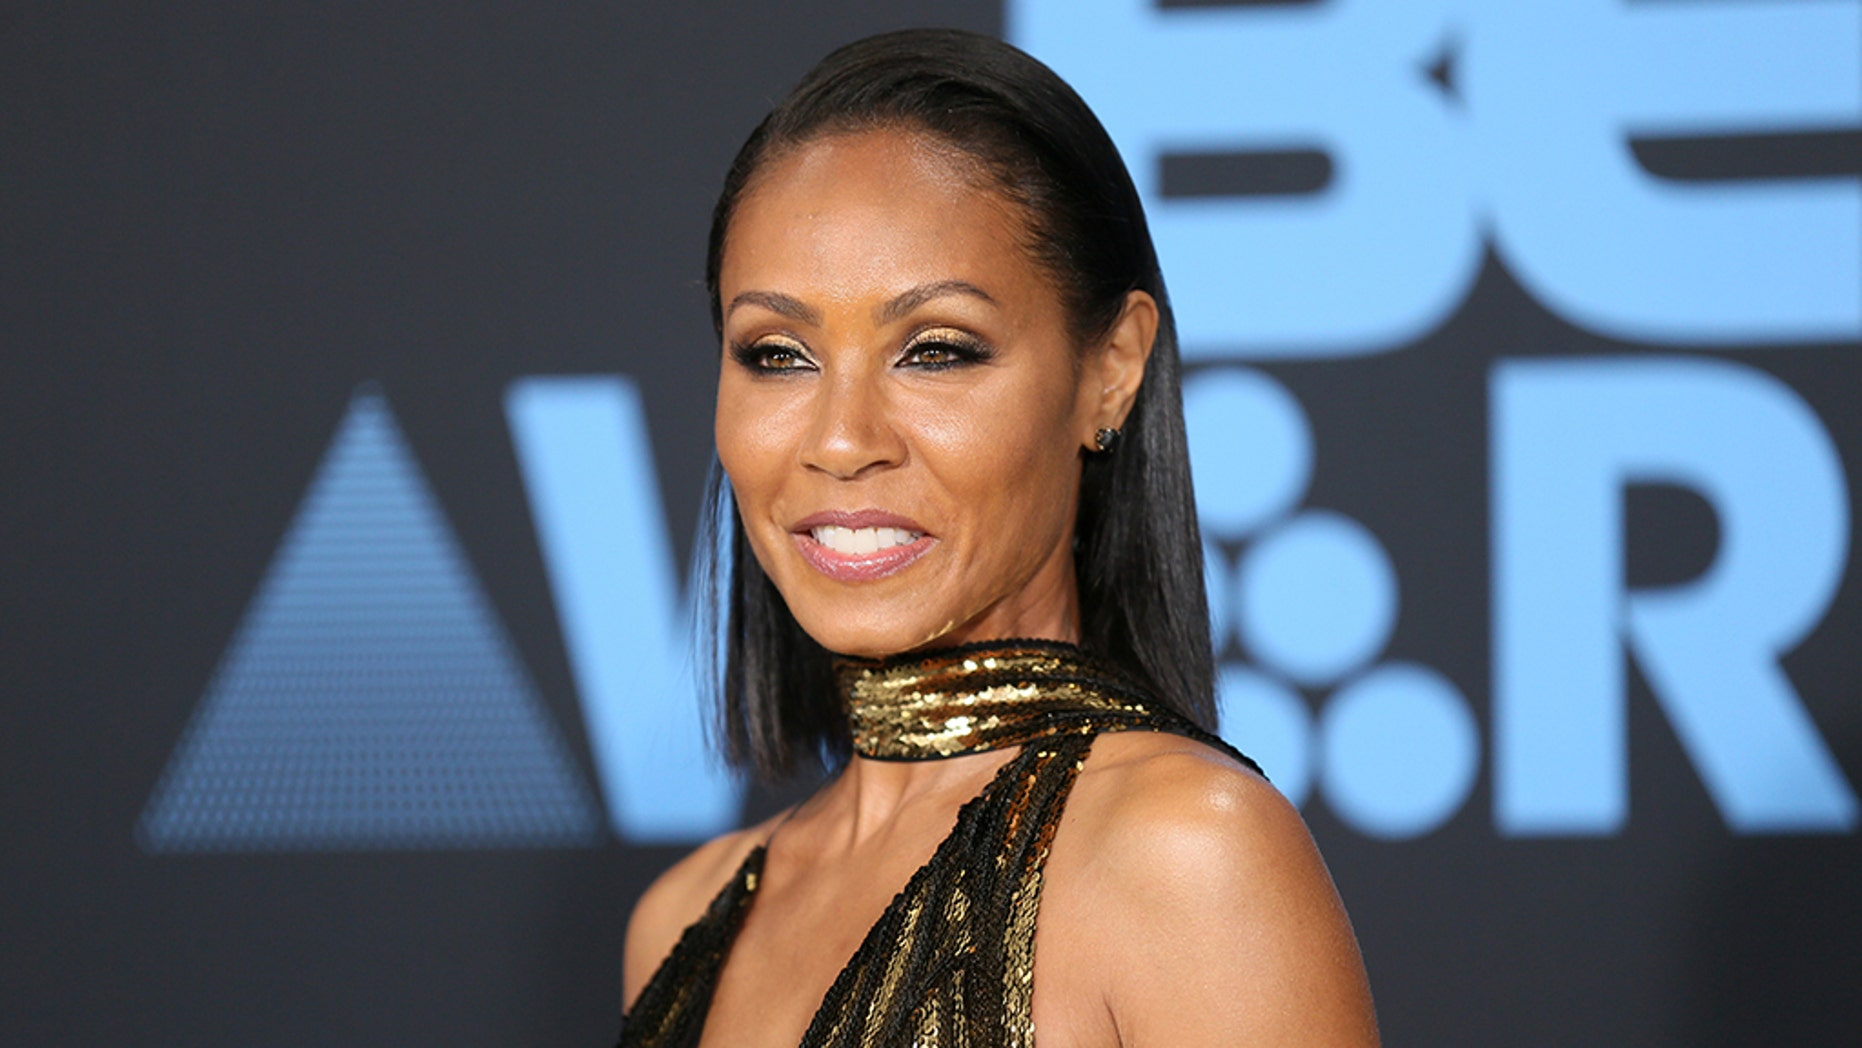 Jada Pinkett Smith Breaks Down in Tears Over Her Parents' Abusive Relationship